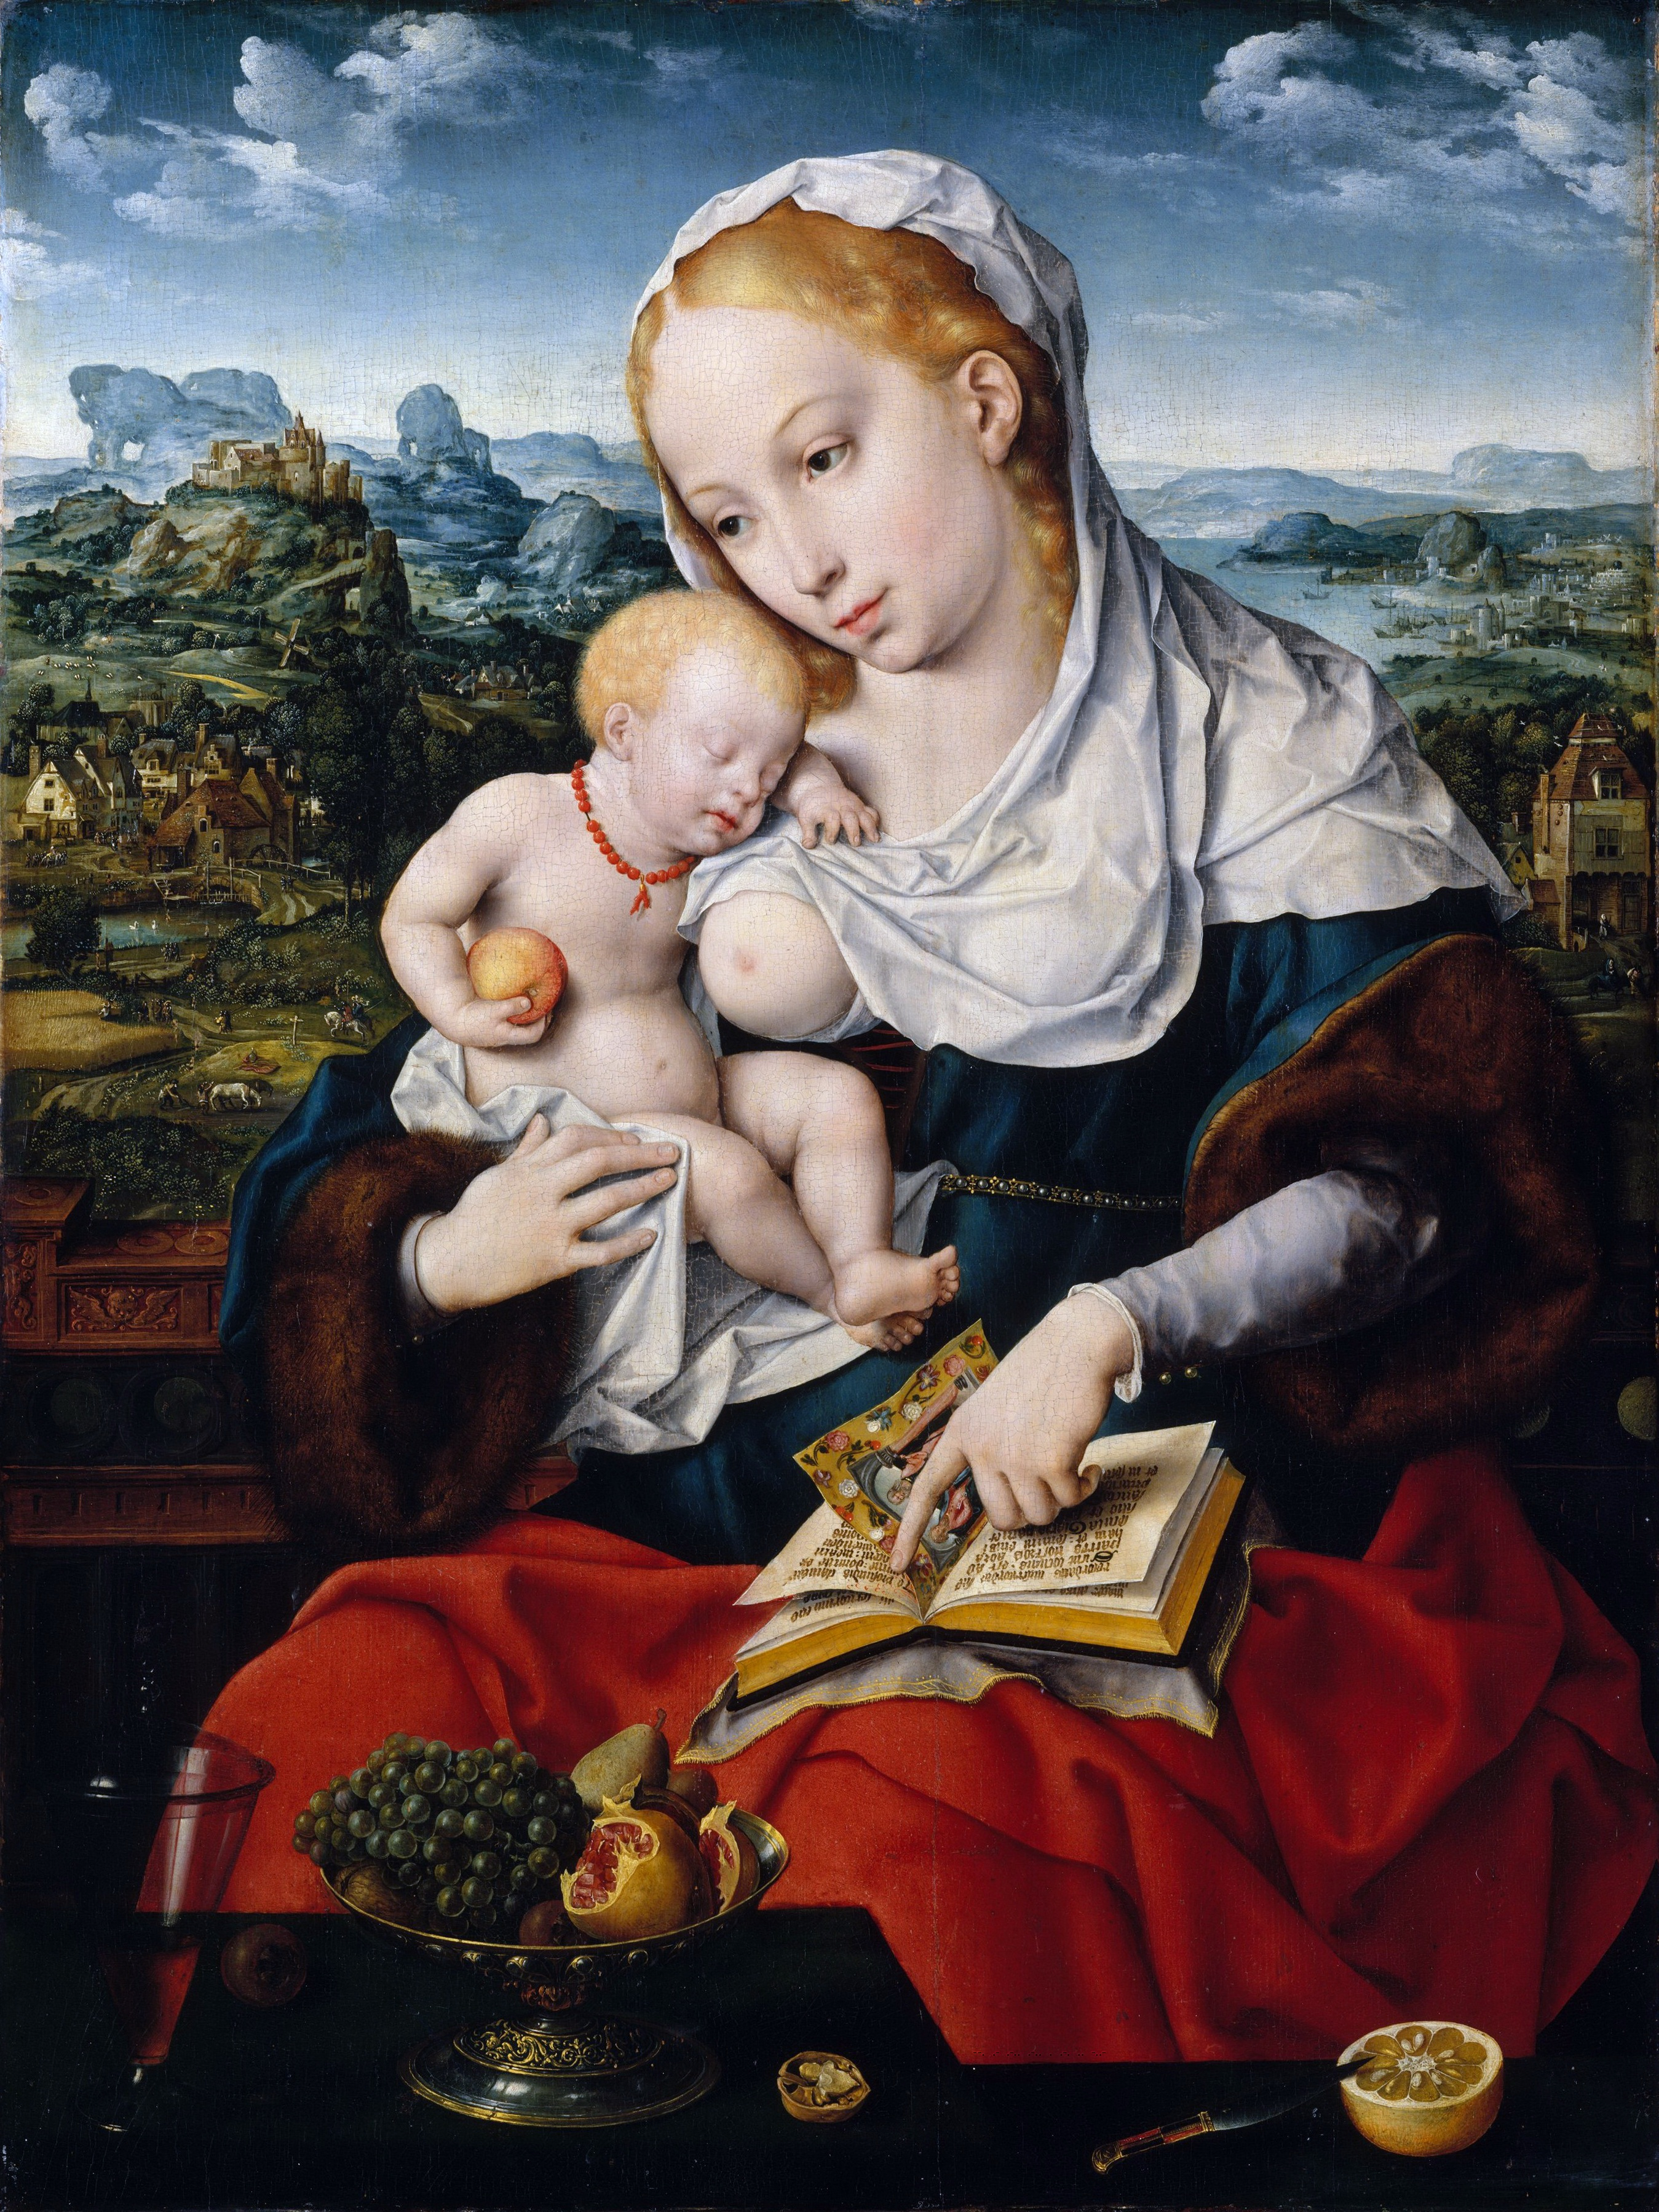 Madonna and Child (about 1525) (70.5 x 52.7) (New York, Metropolitan) (picture painted by an assistant)